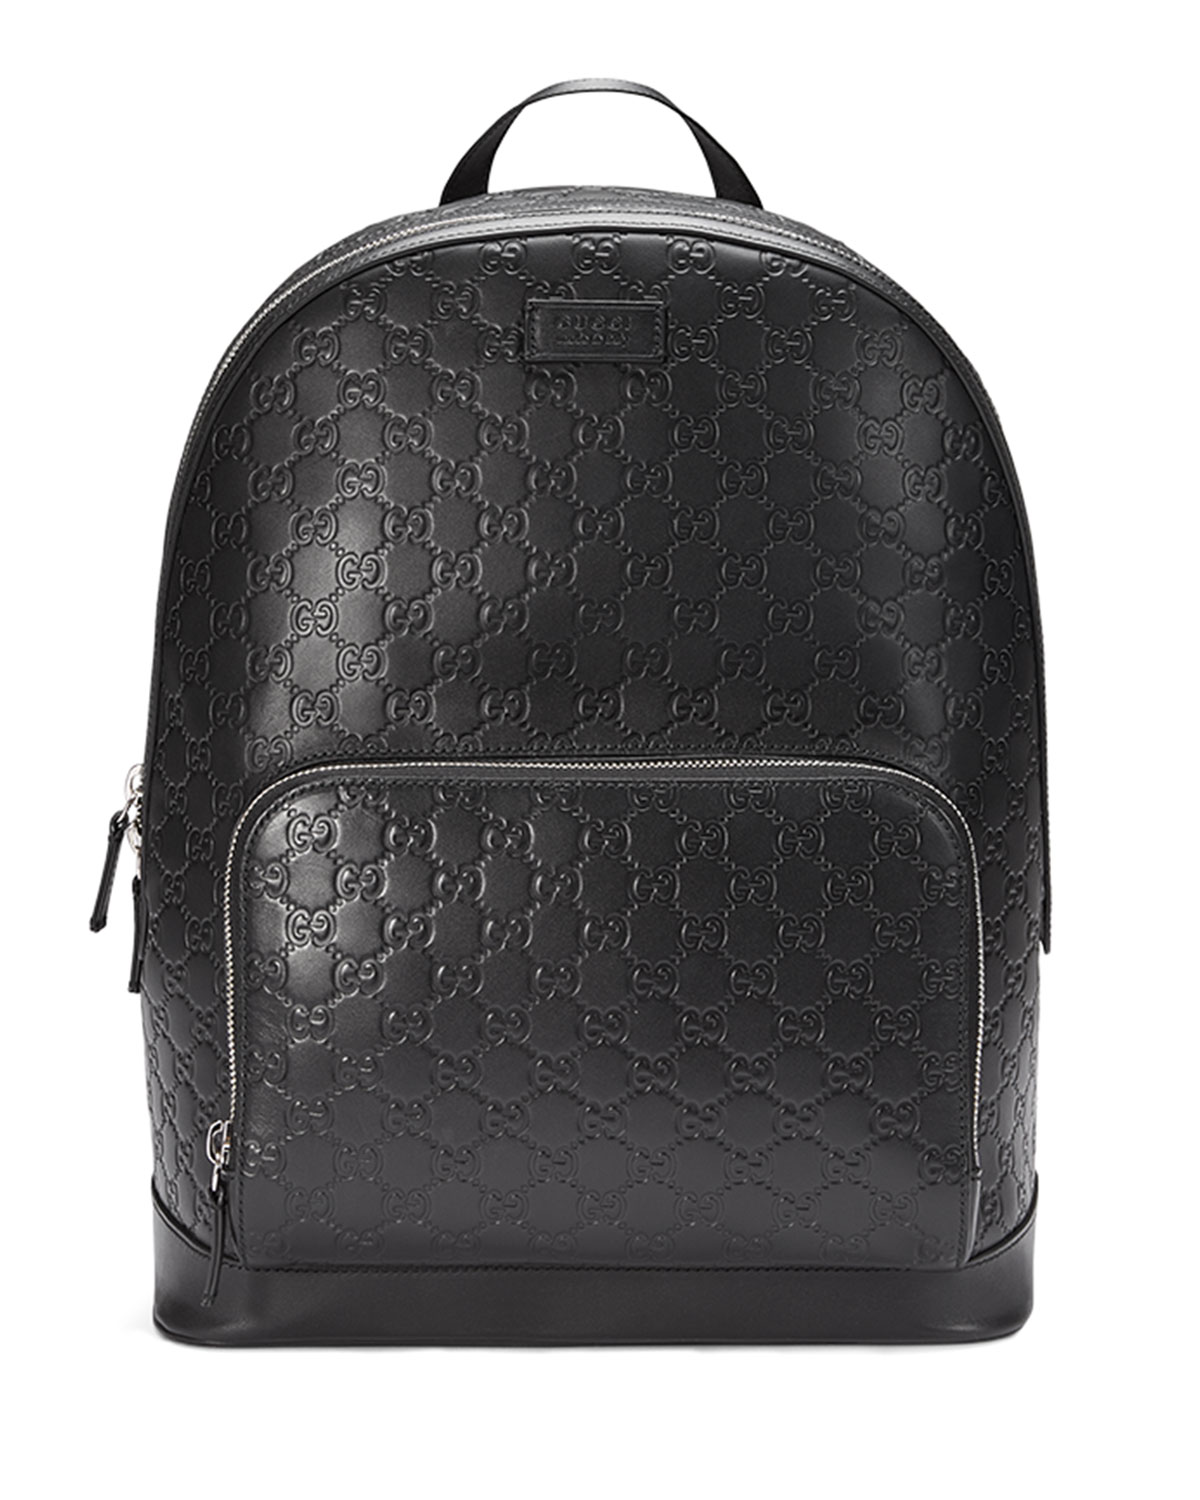 4de1453dabf0 Gucci Signature Leather Backpack